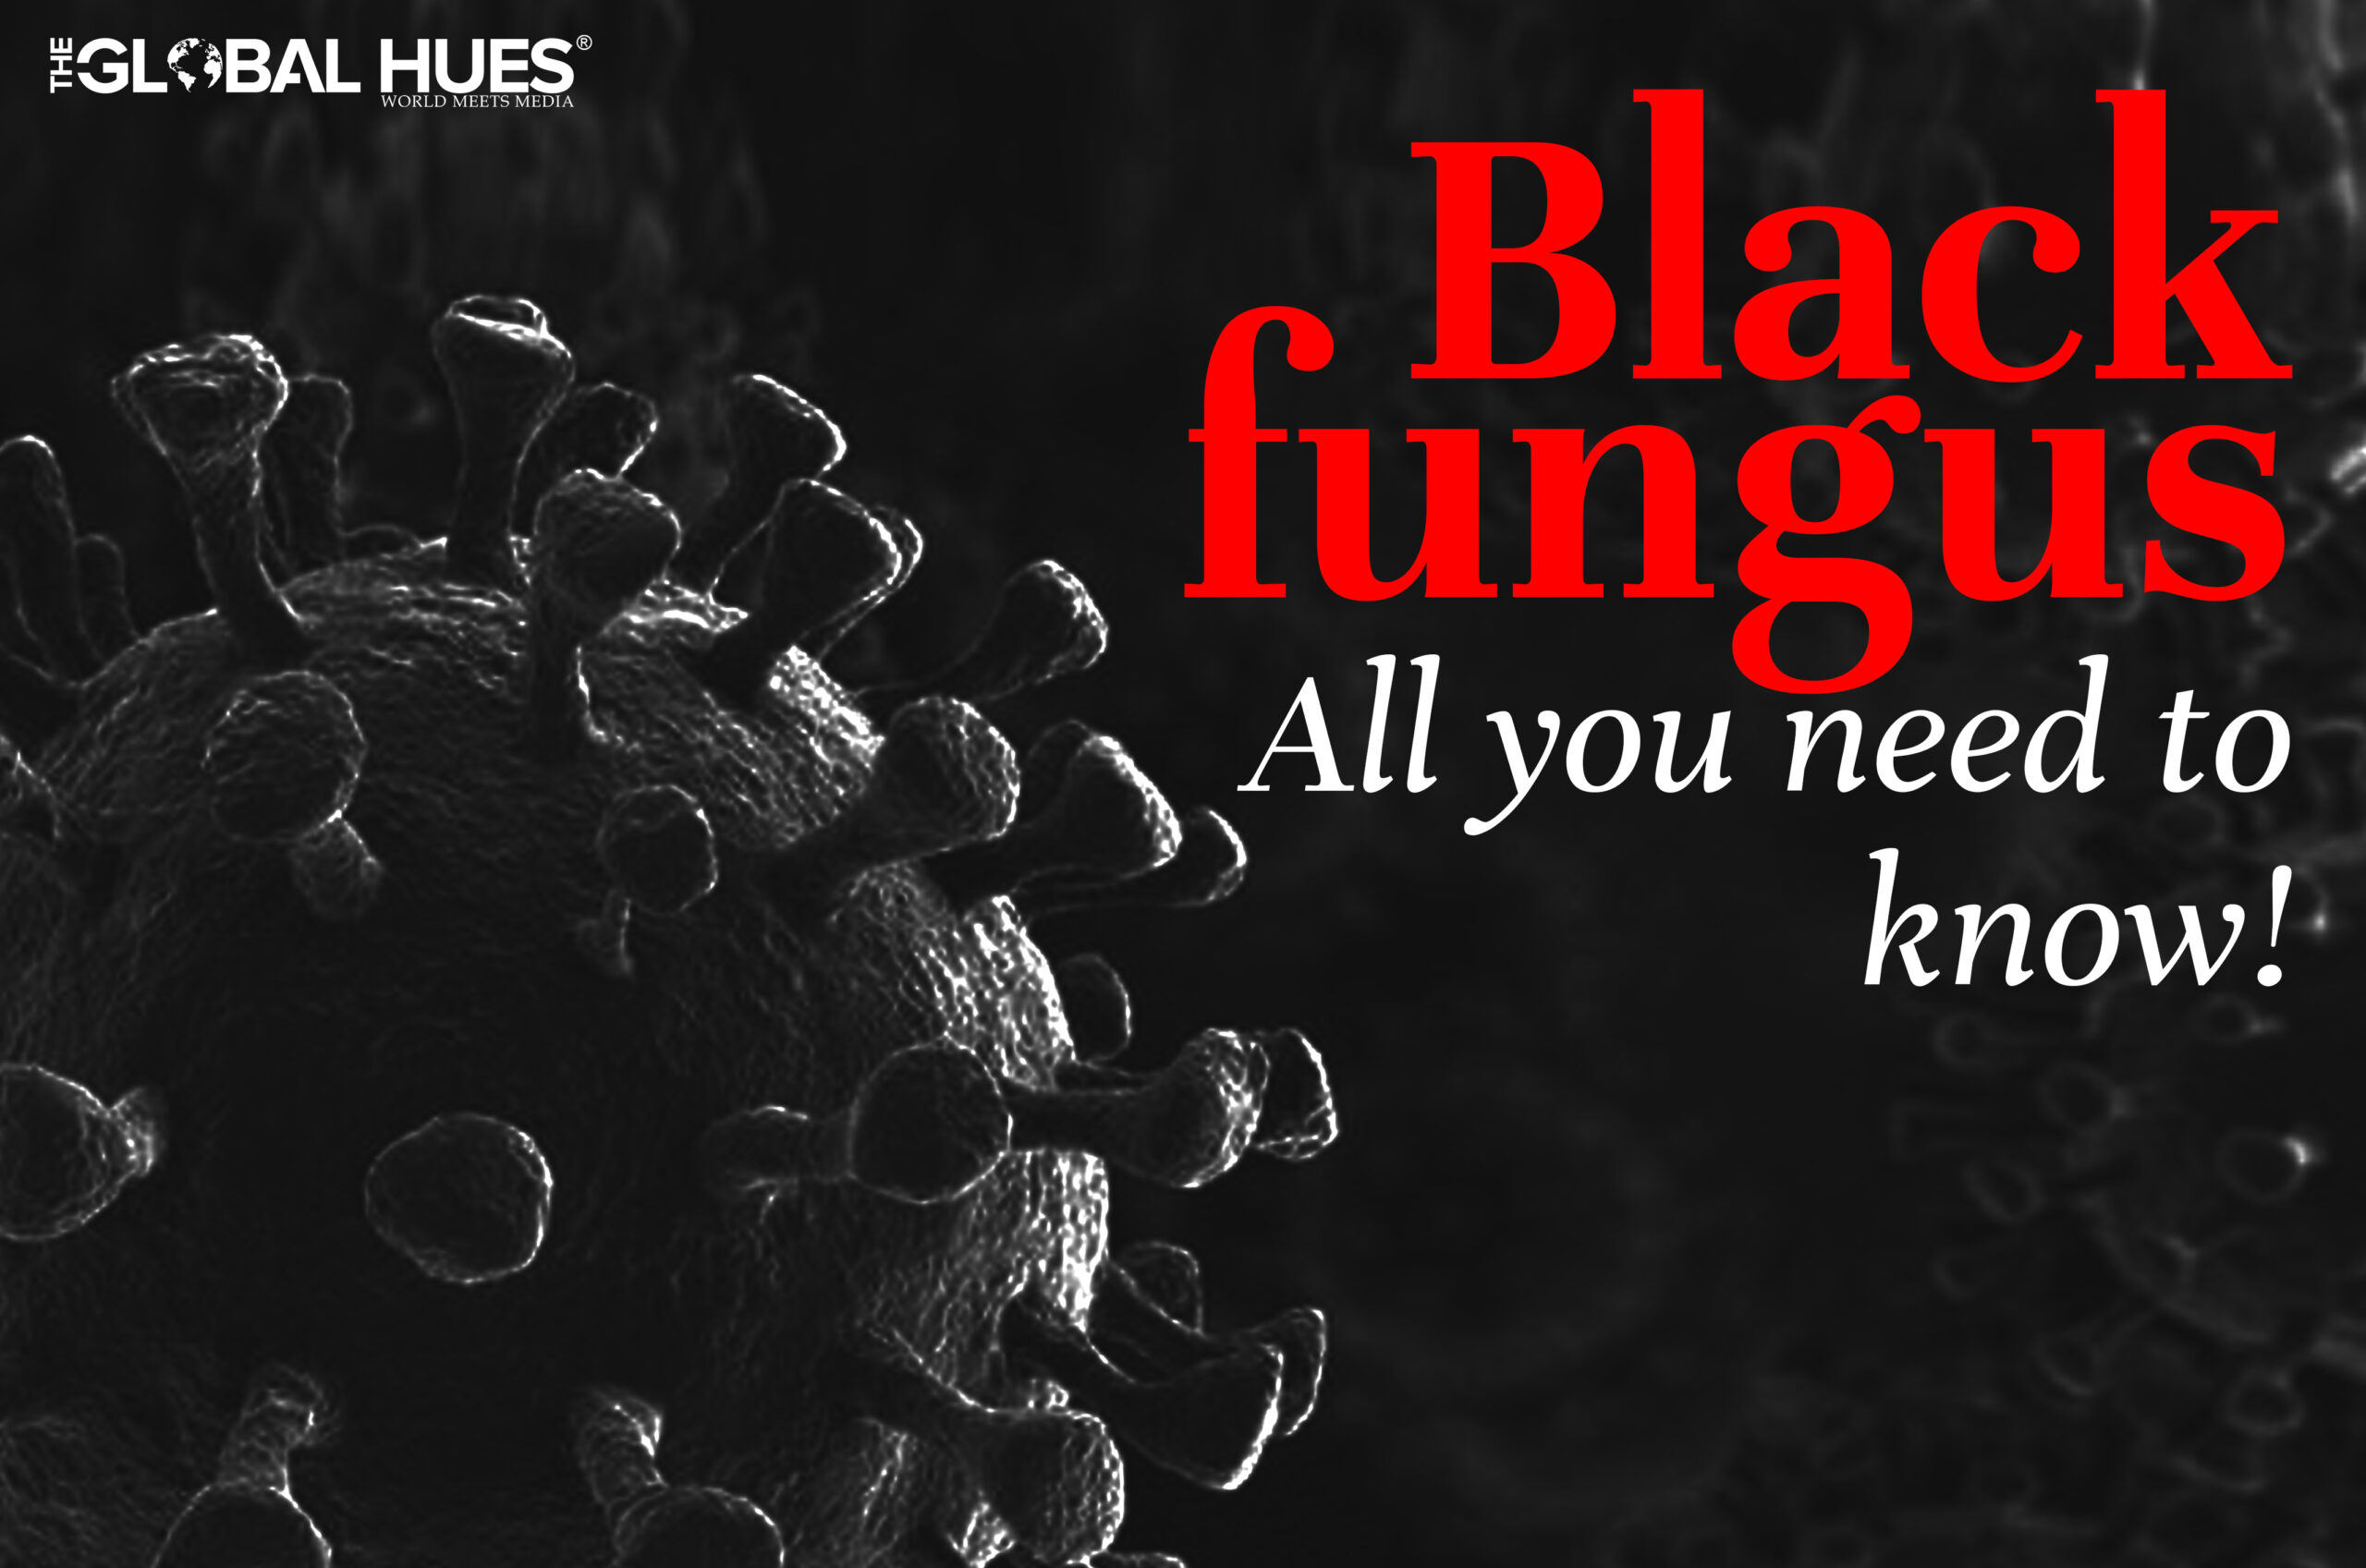 Black-fungus-All-you-need-to-know